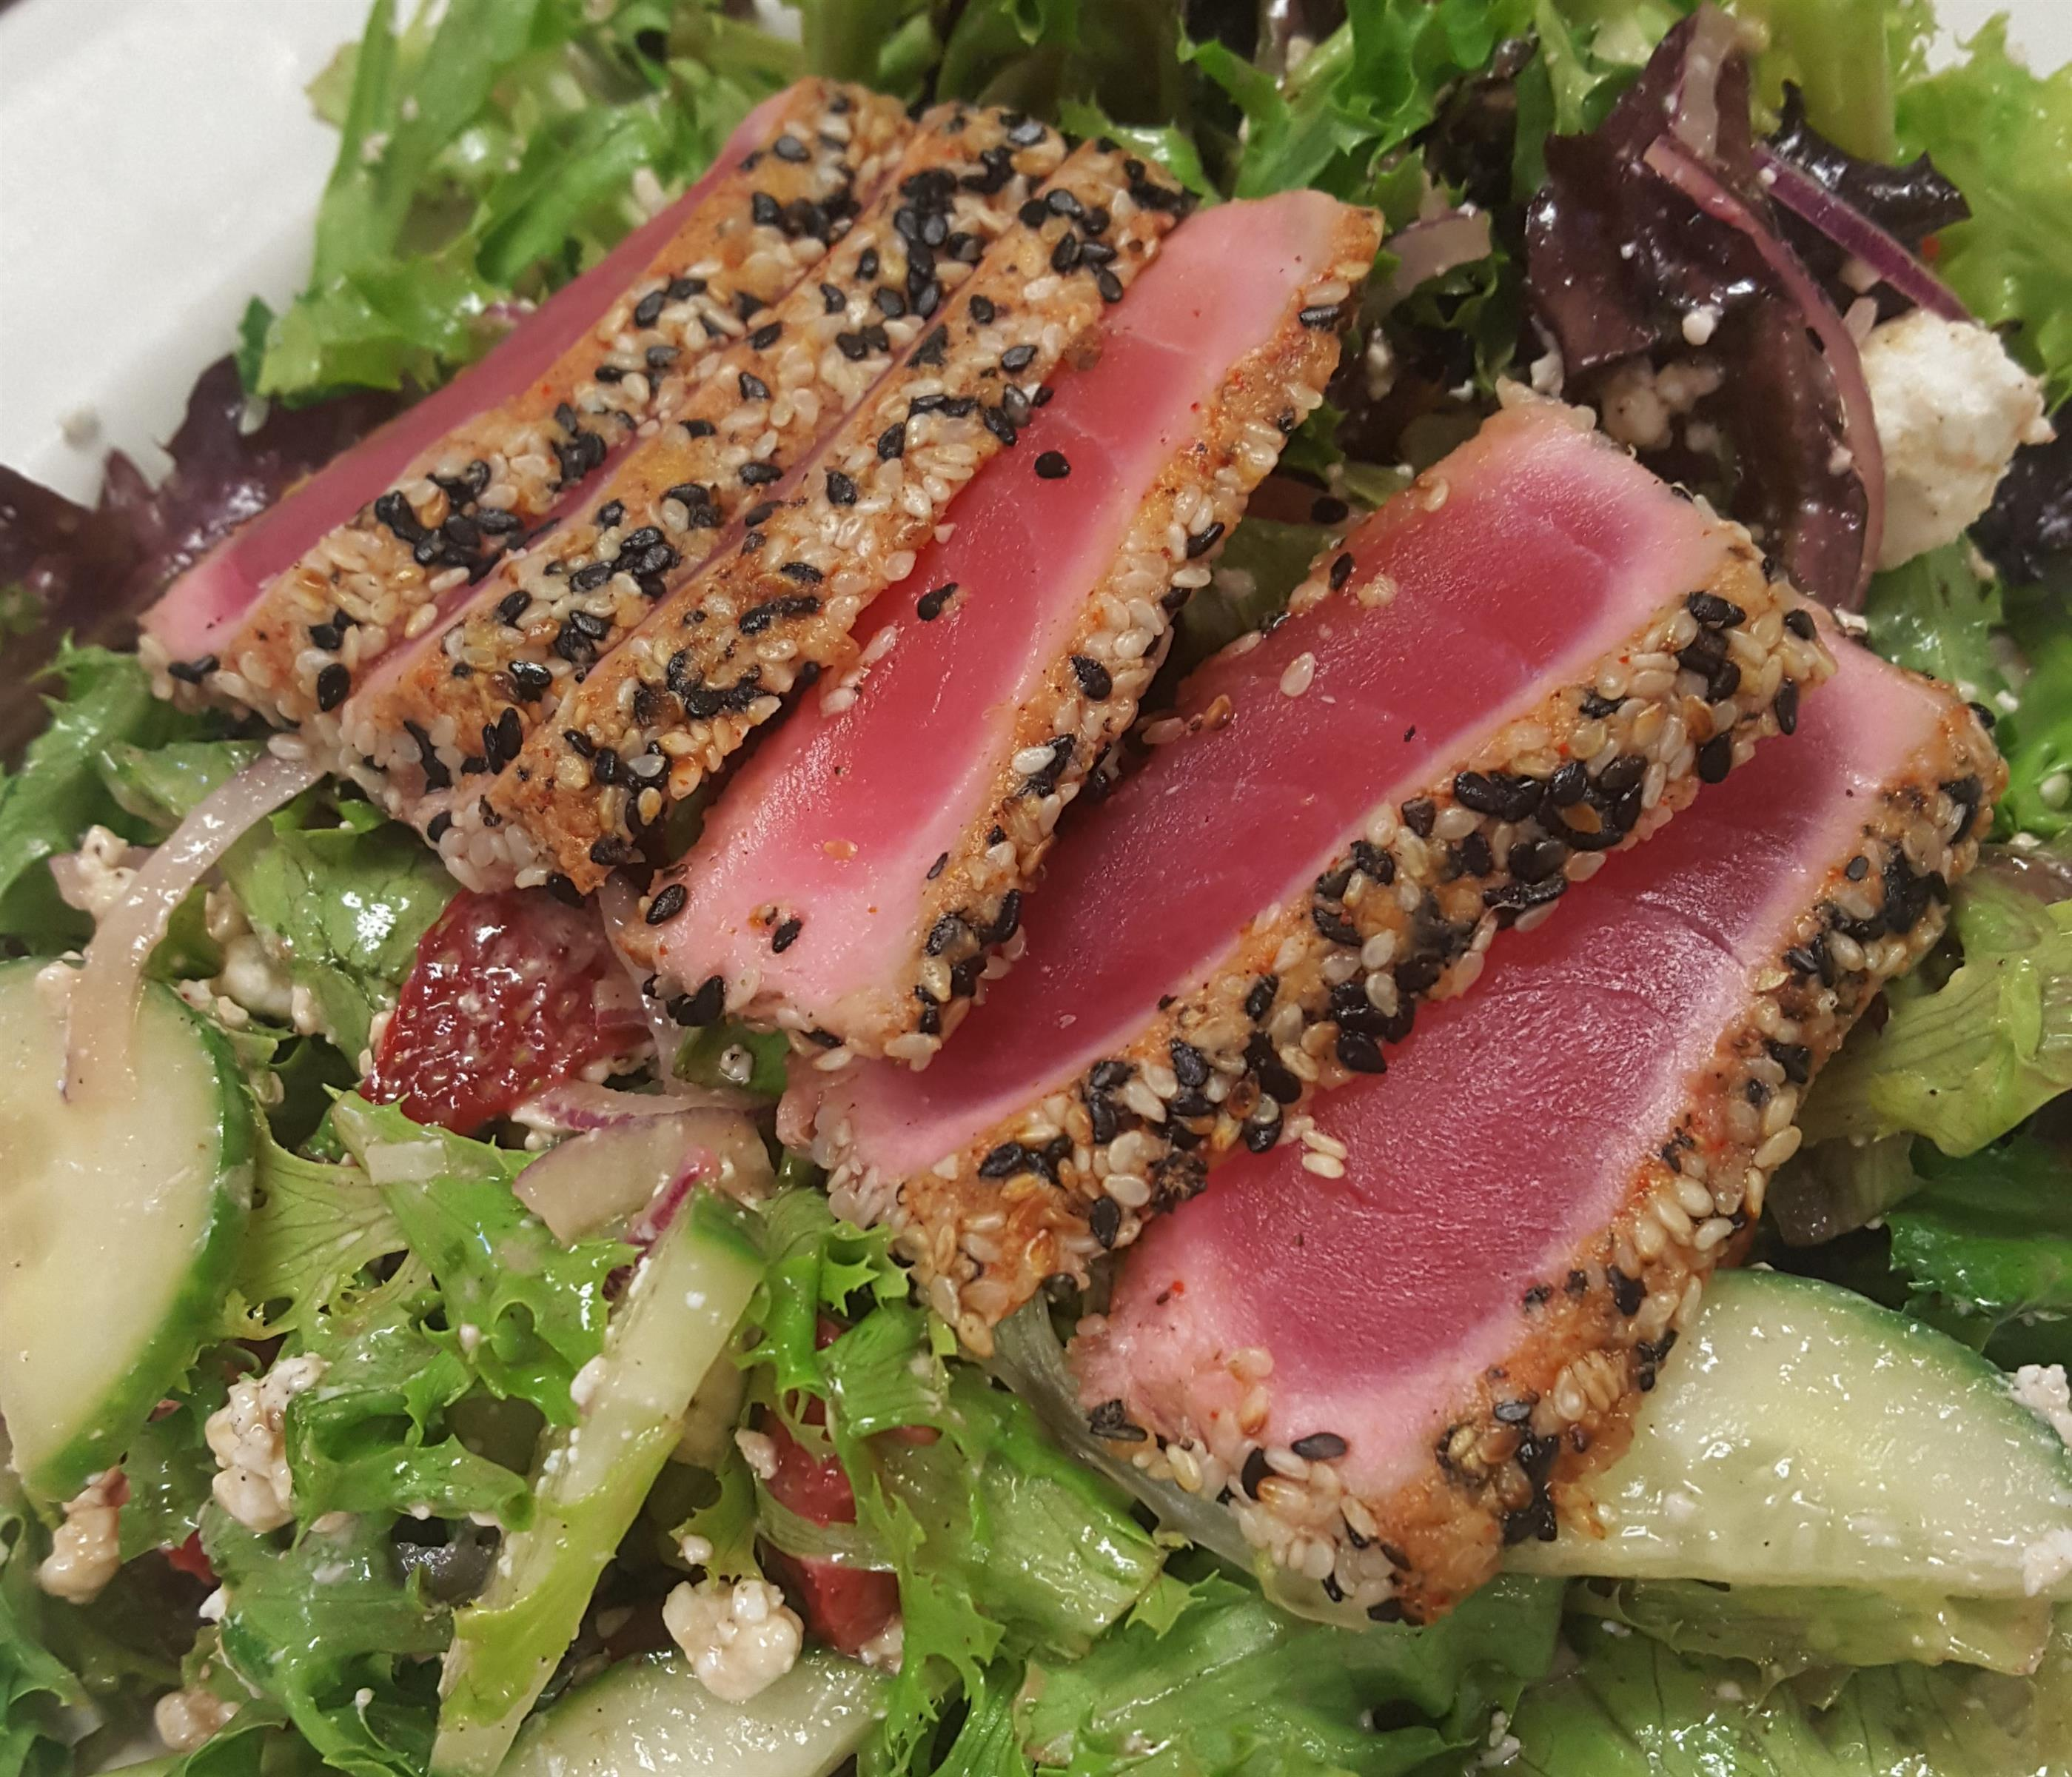 Salad with sesame crusted ahi tuna.